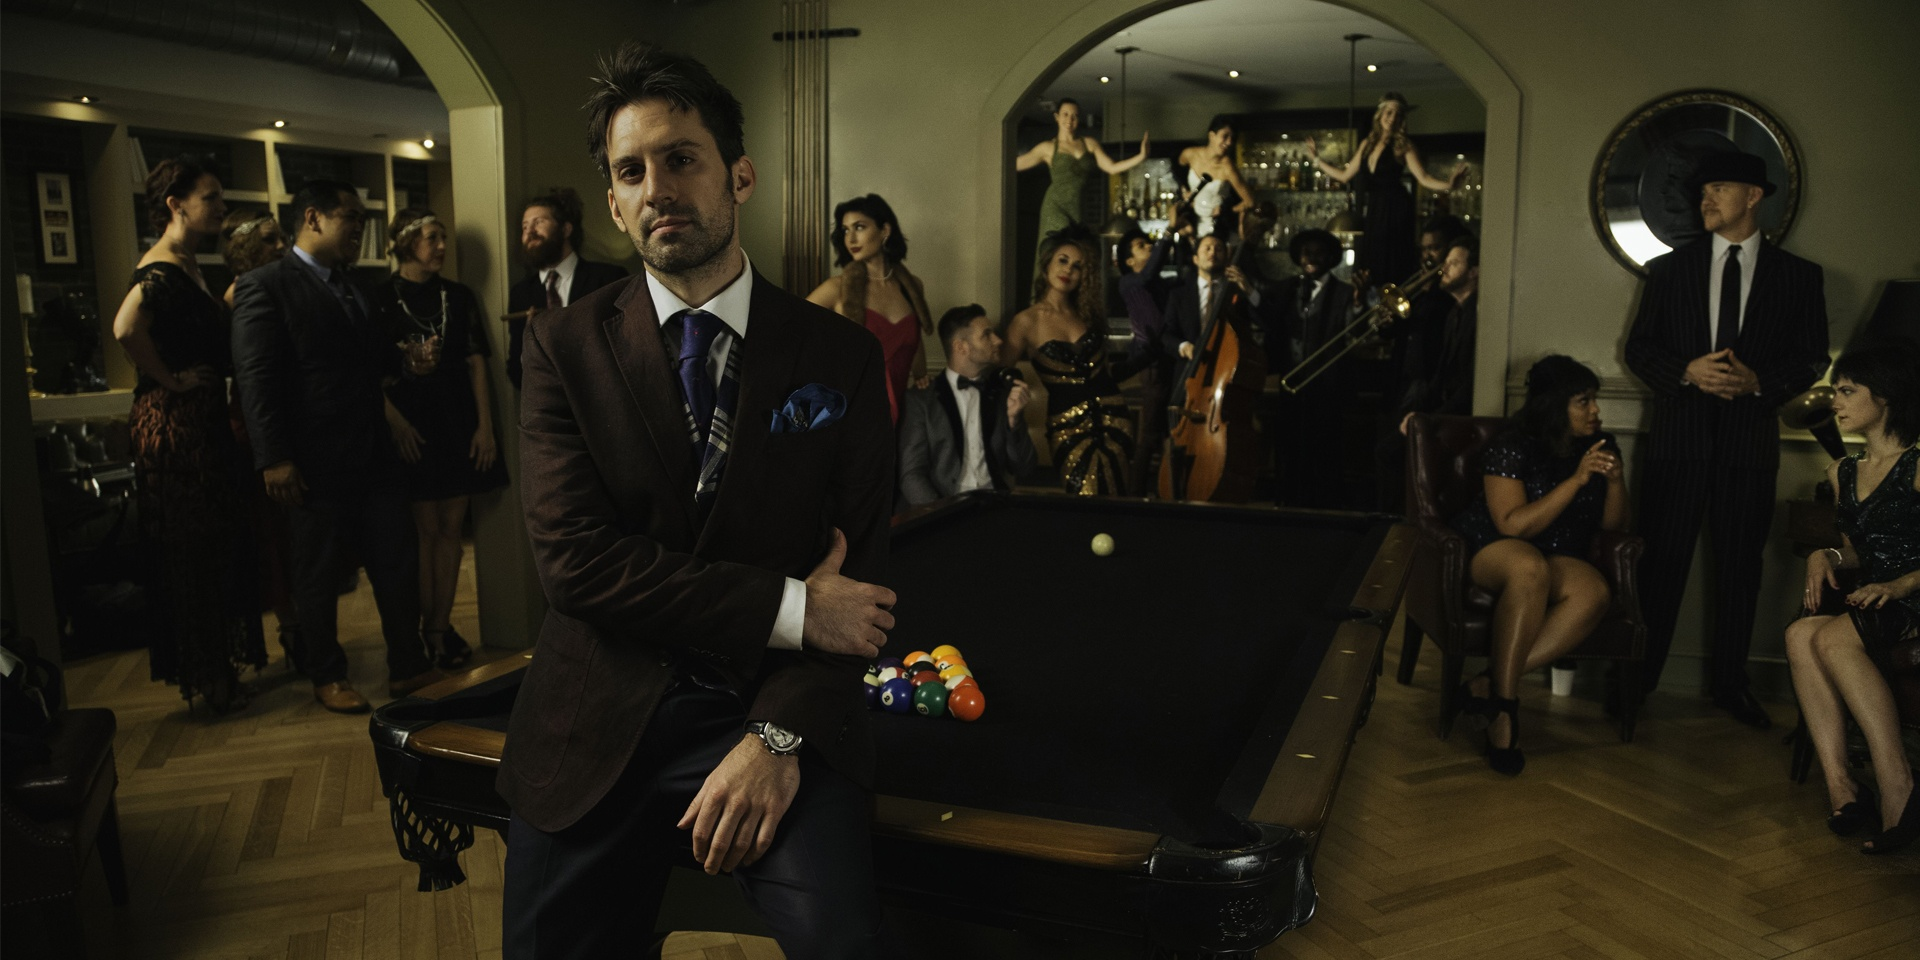 Musical collective Postmodern Jukebox is returning to Singapore